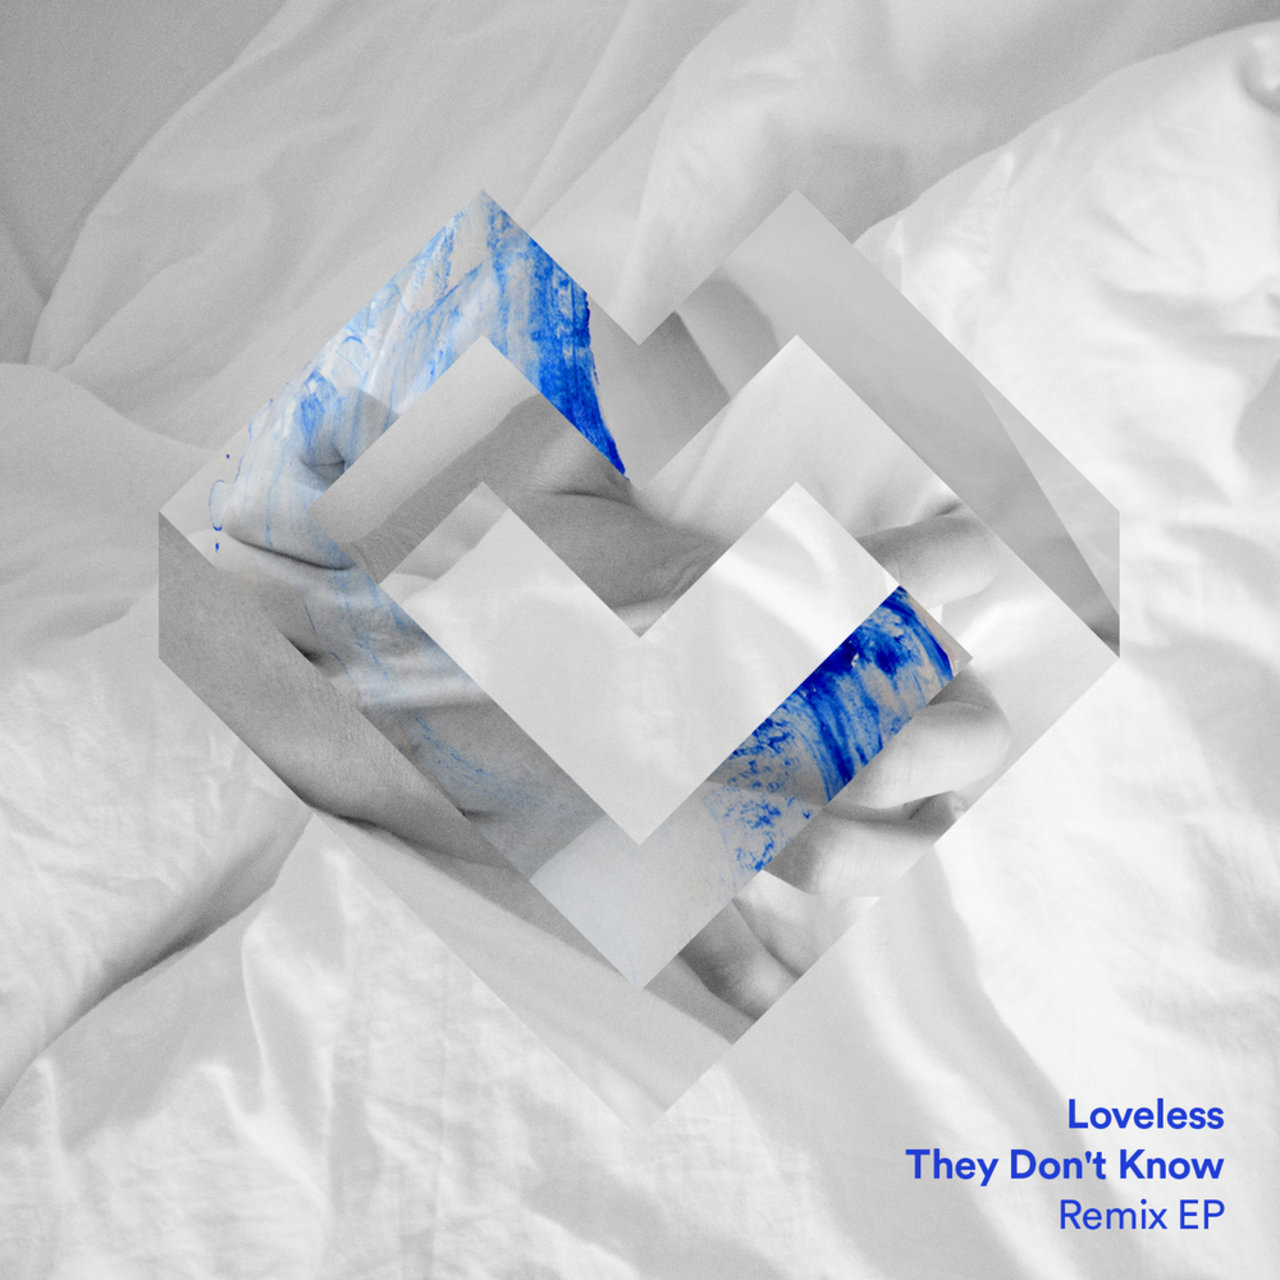 They Don't Know (Remix EP)